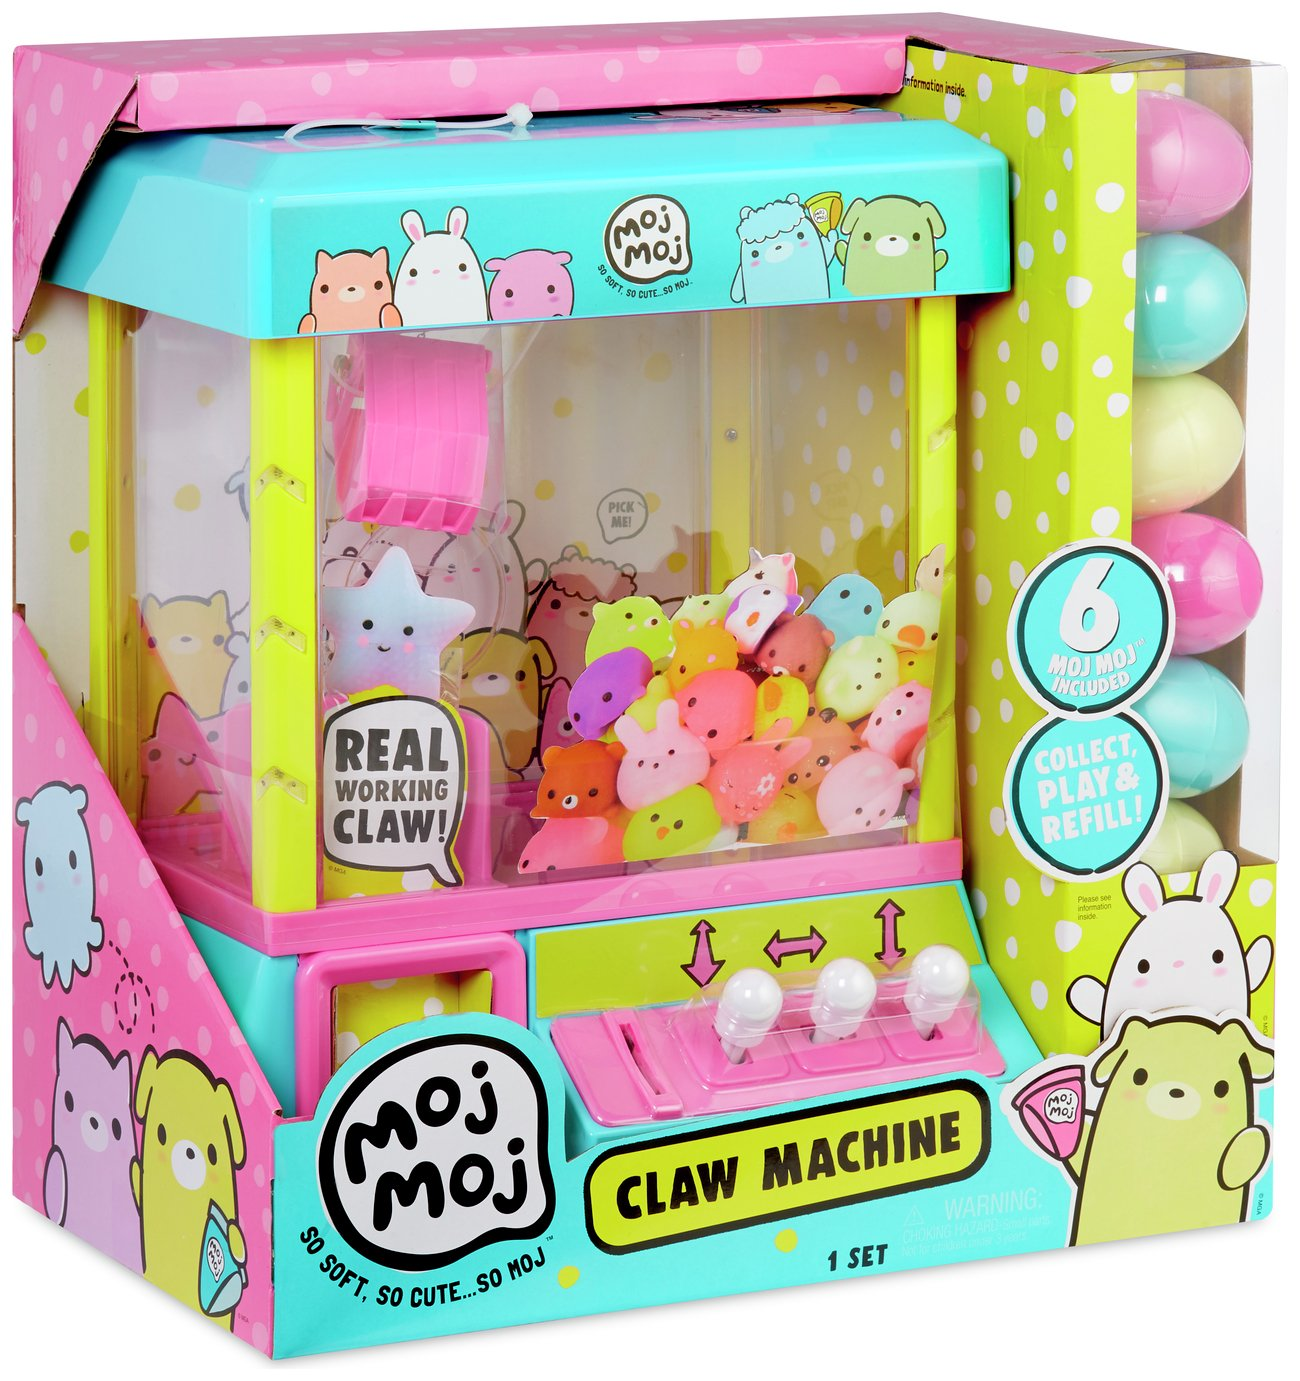 Buy Moj Moj Playset Action Figures And Playsets Argos